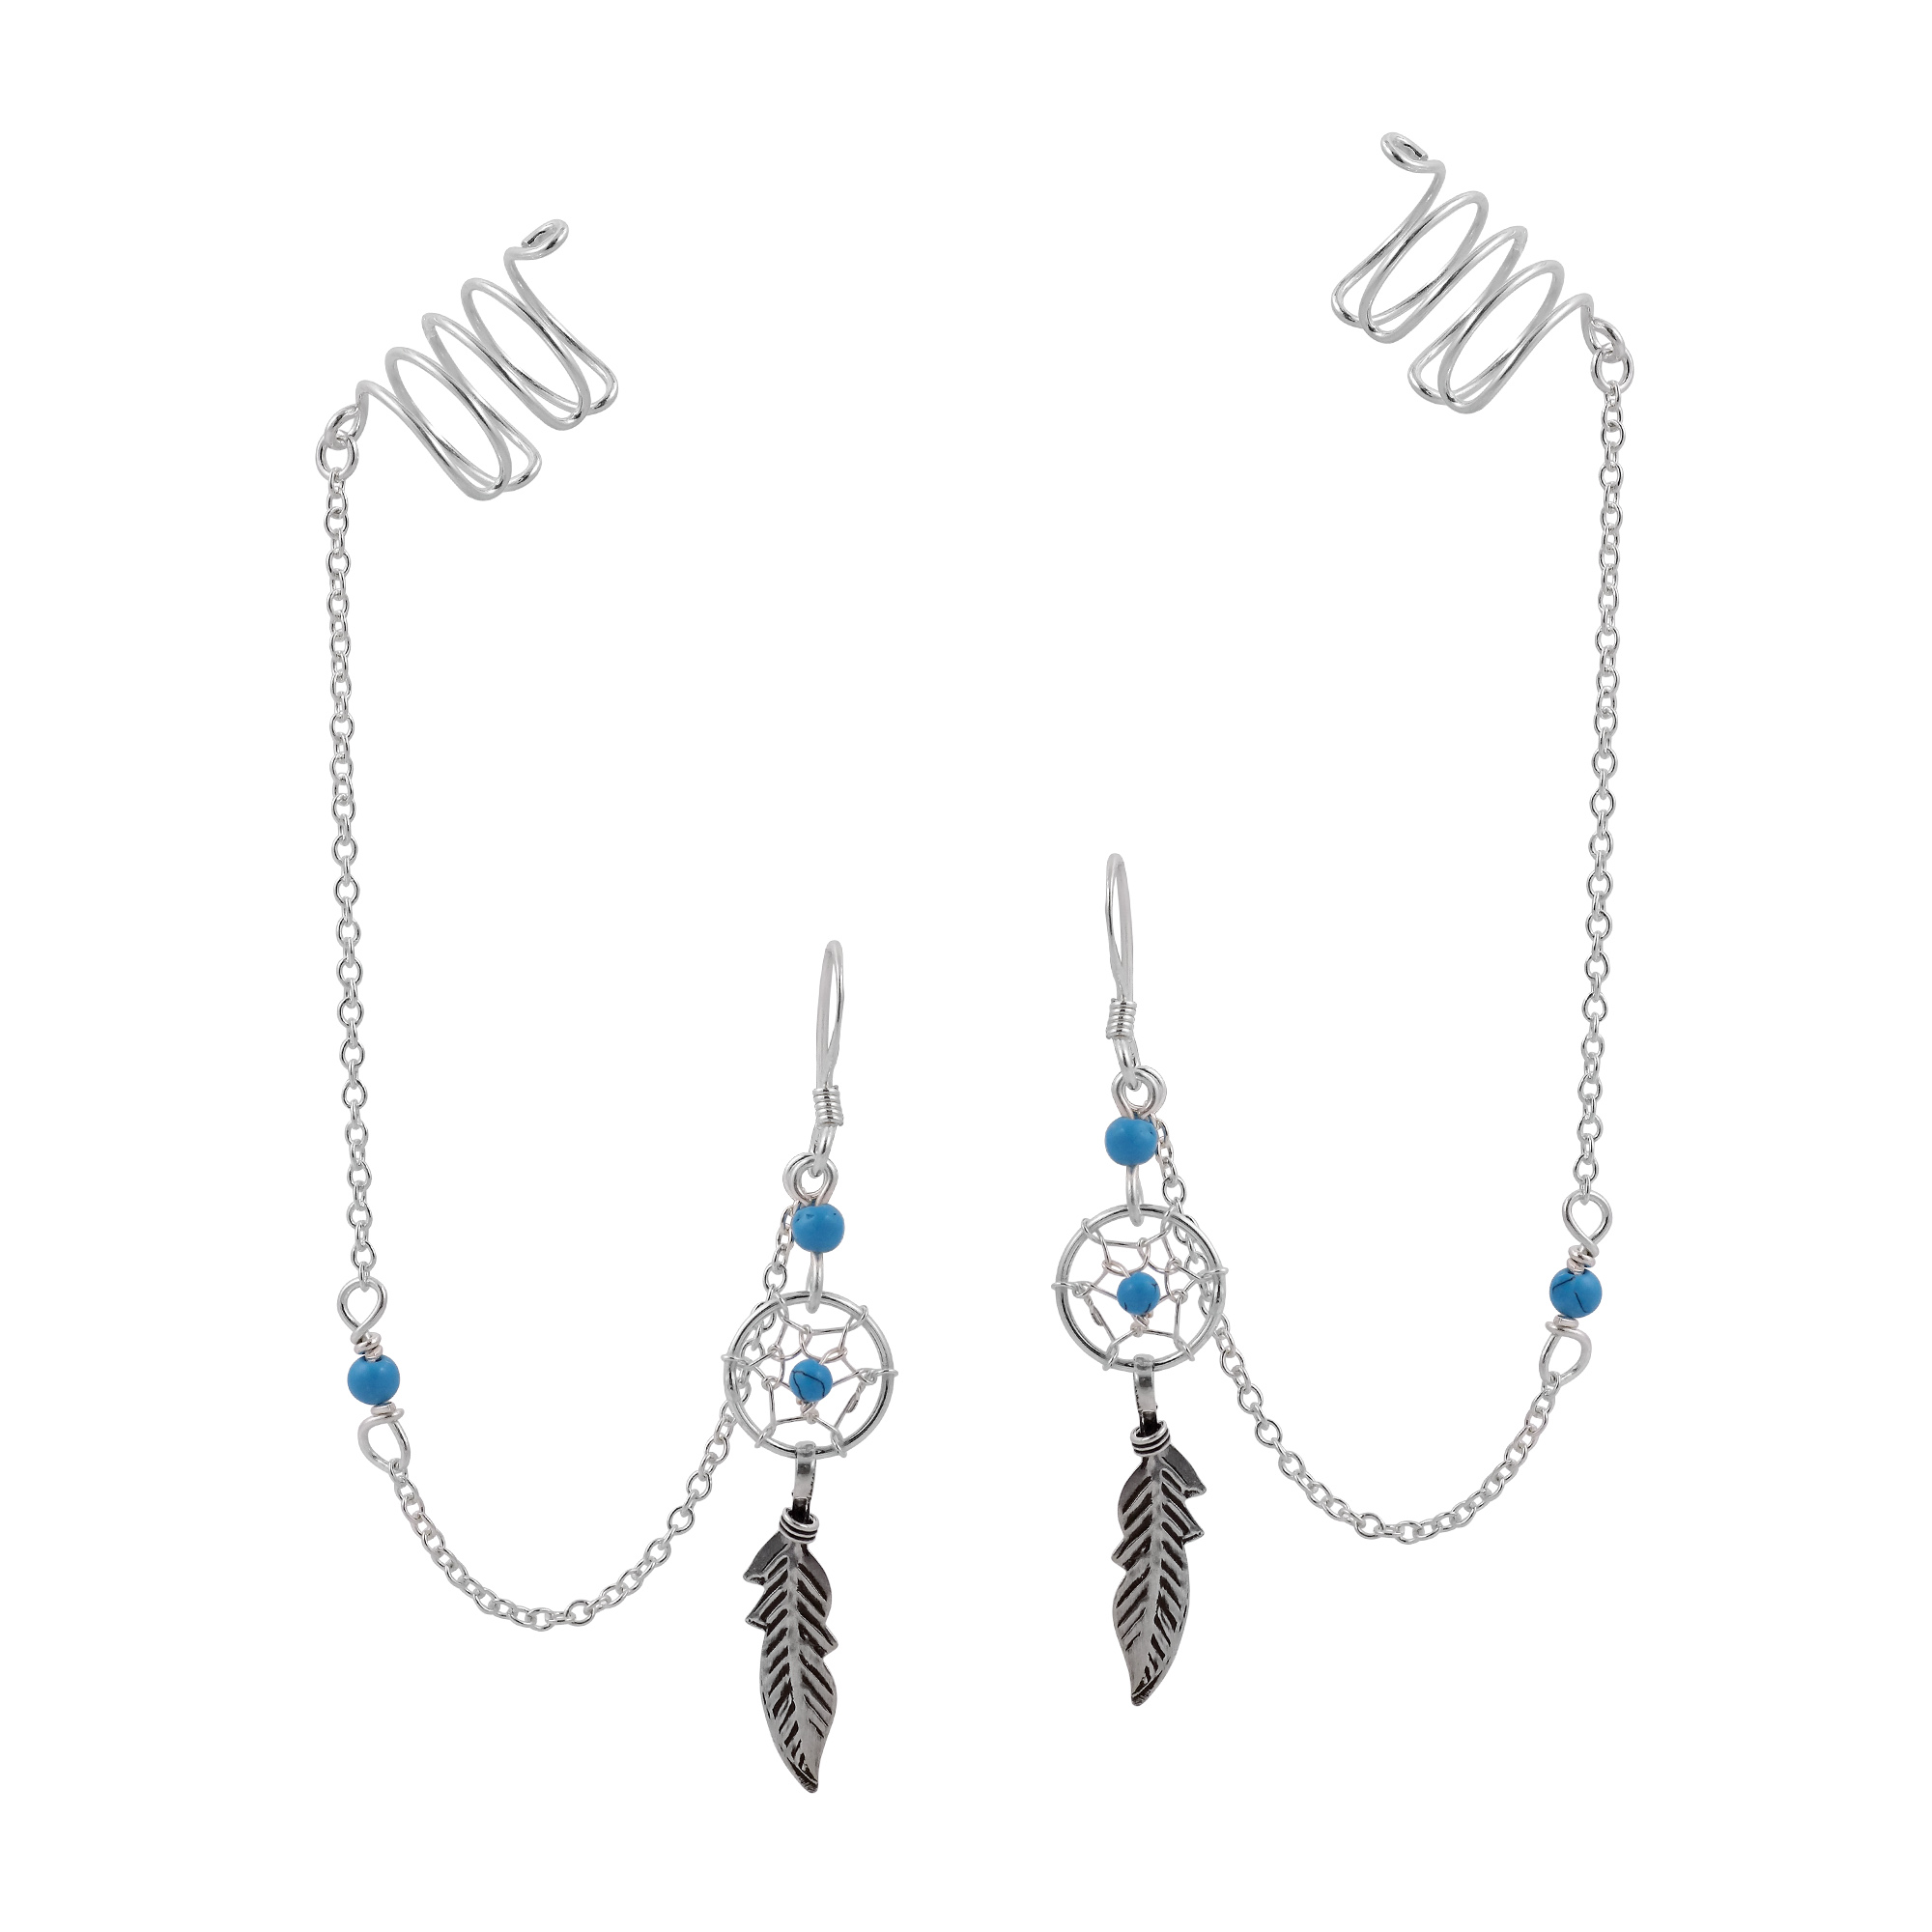 Dream Catcher Ear Cuff Dream Catcher Chain Blue Turquoise Sterling Silver Dangle with Ear 27